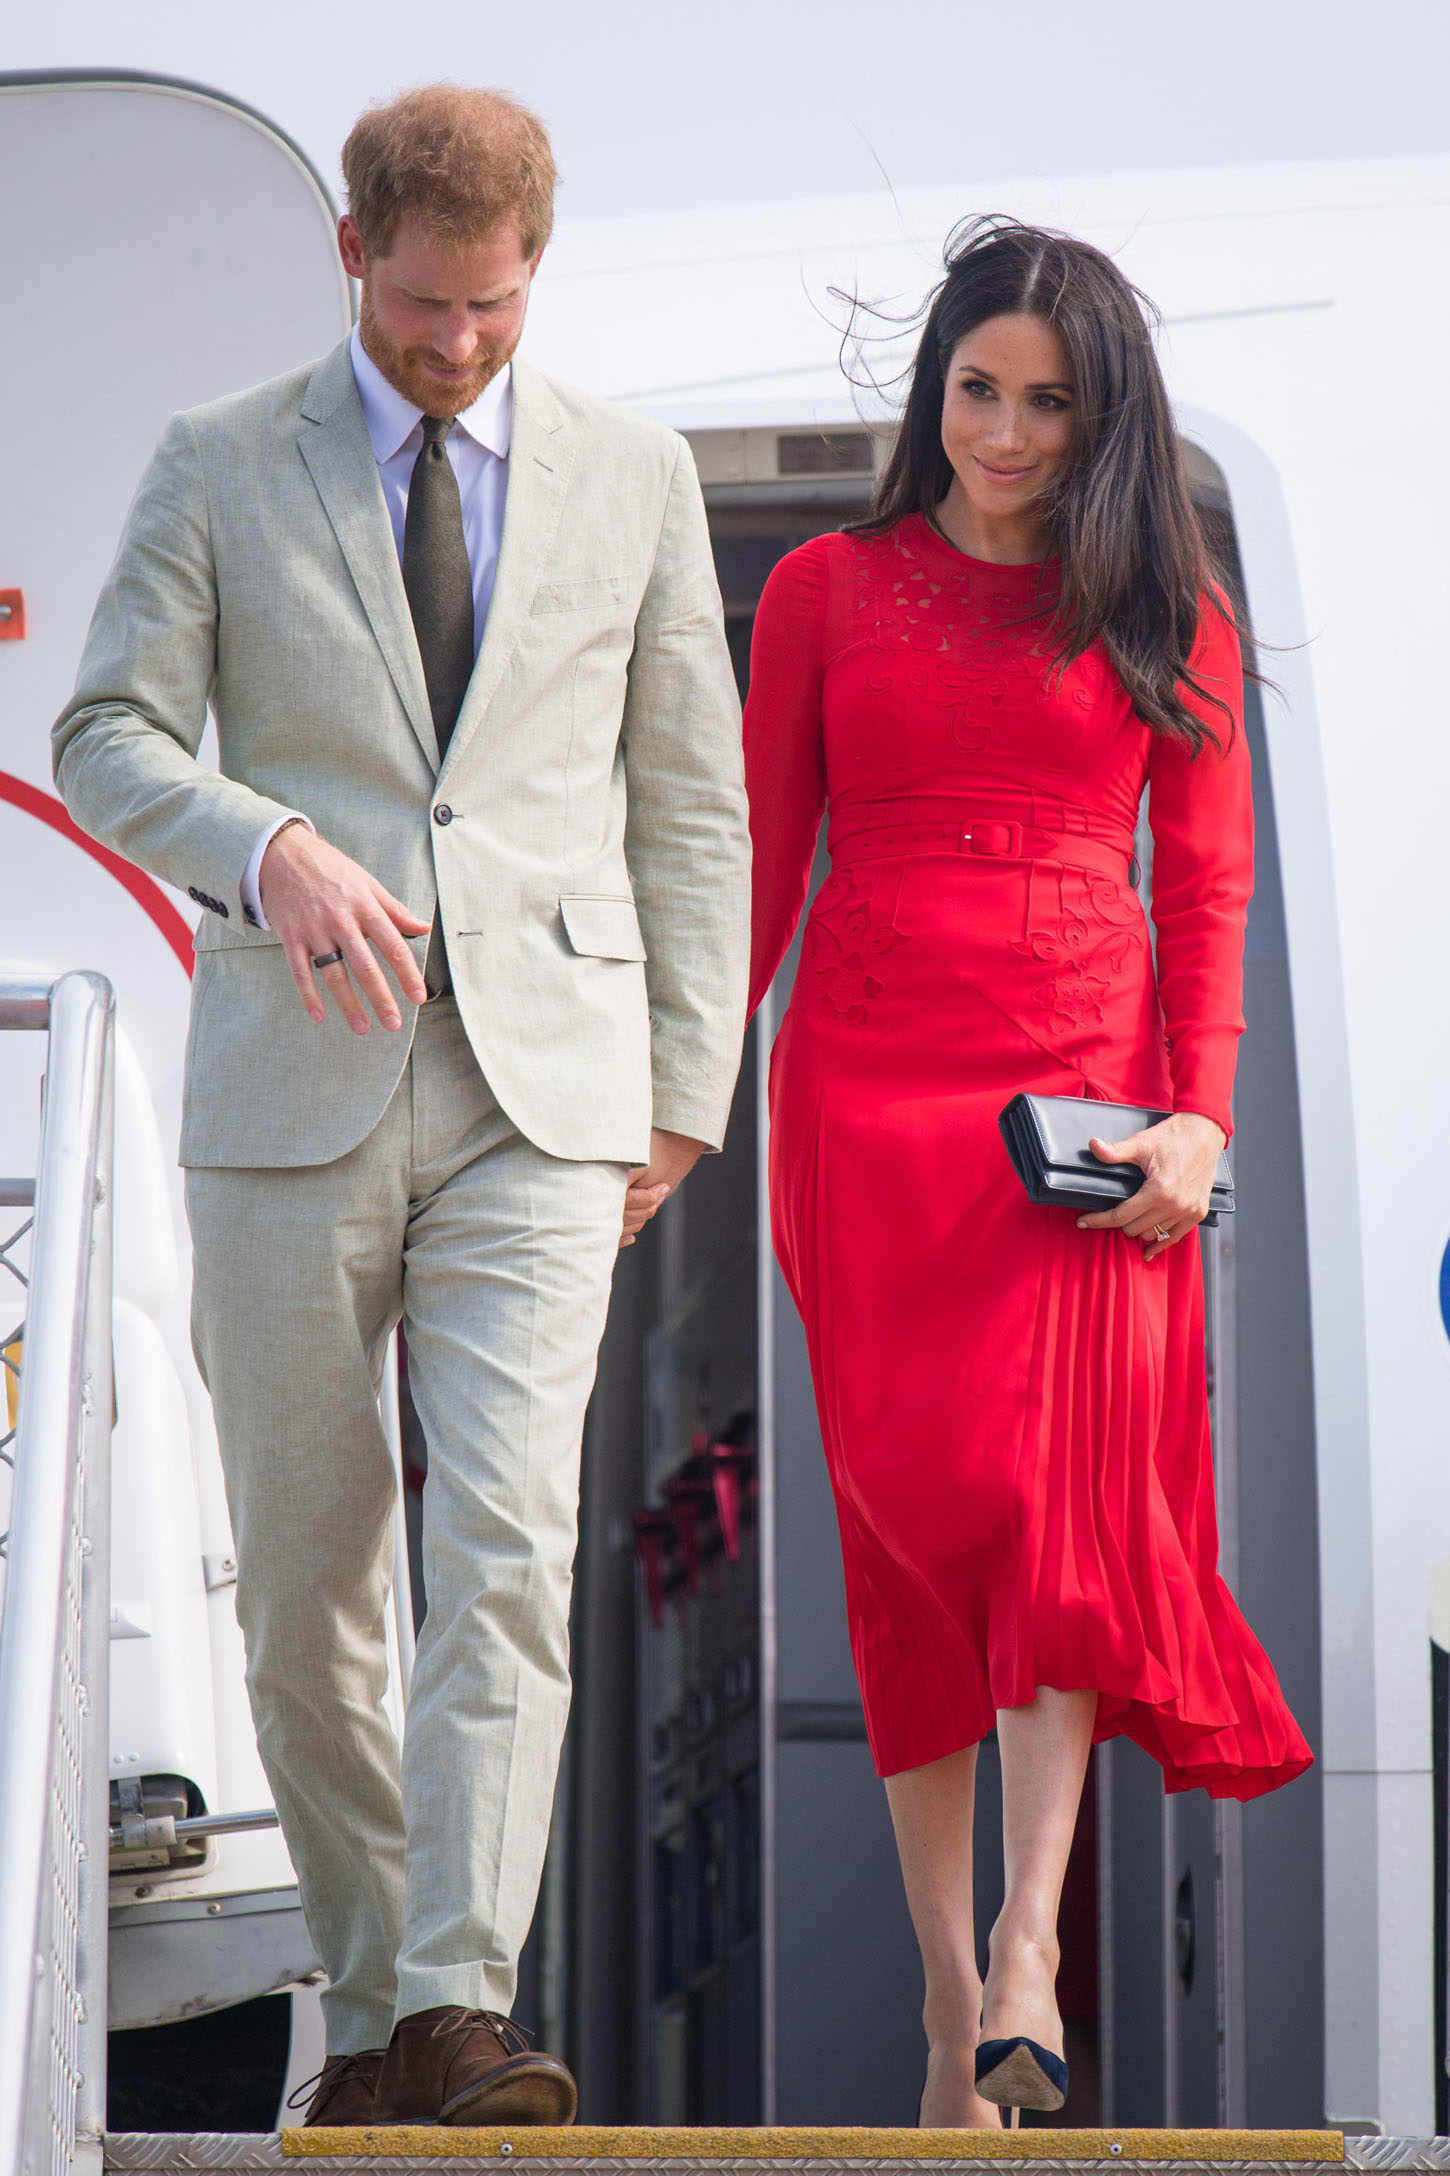 NUKU'ALOF, TONGA - OCTOBER 25: Prince Harry, Duke of Sussex and Meghan, Duchess of Sussex arrive at Fua'amotu Airport on October 25, 2018 in Nuku'Alofa, Tonga. The Duke and Duchess of Sussex are on their official 16-day Autumn tour visiting cities in Australia, Fiji, Tonga and New Zealand. (Photo by Dominic Lipinski - Pool/Getty Images)